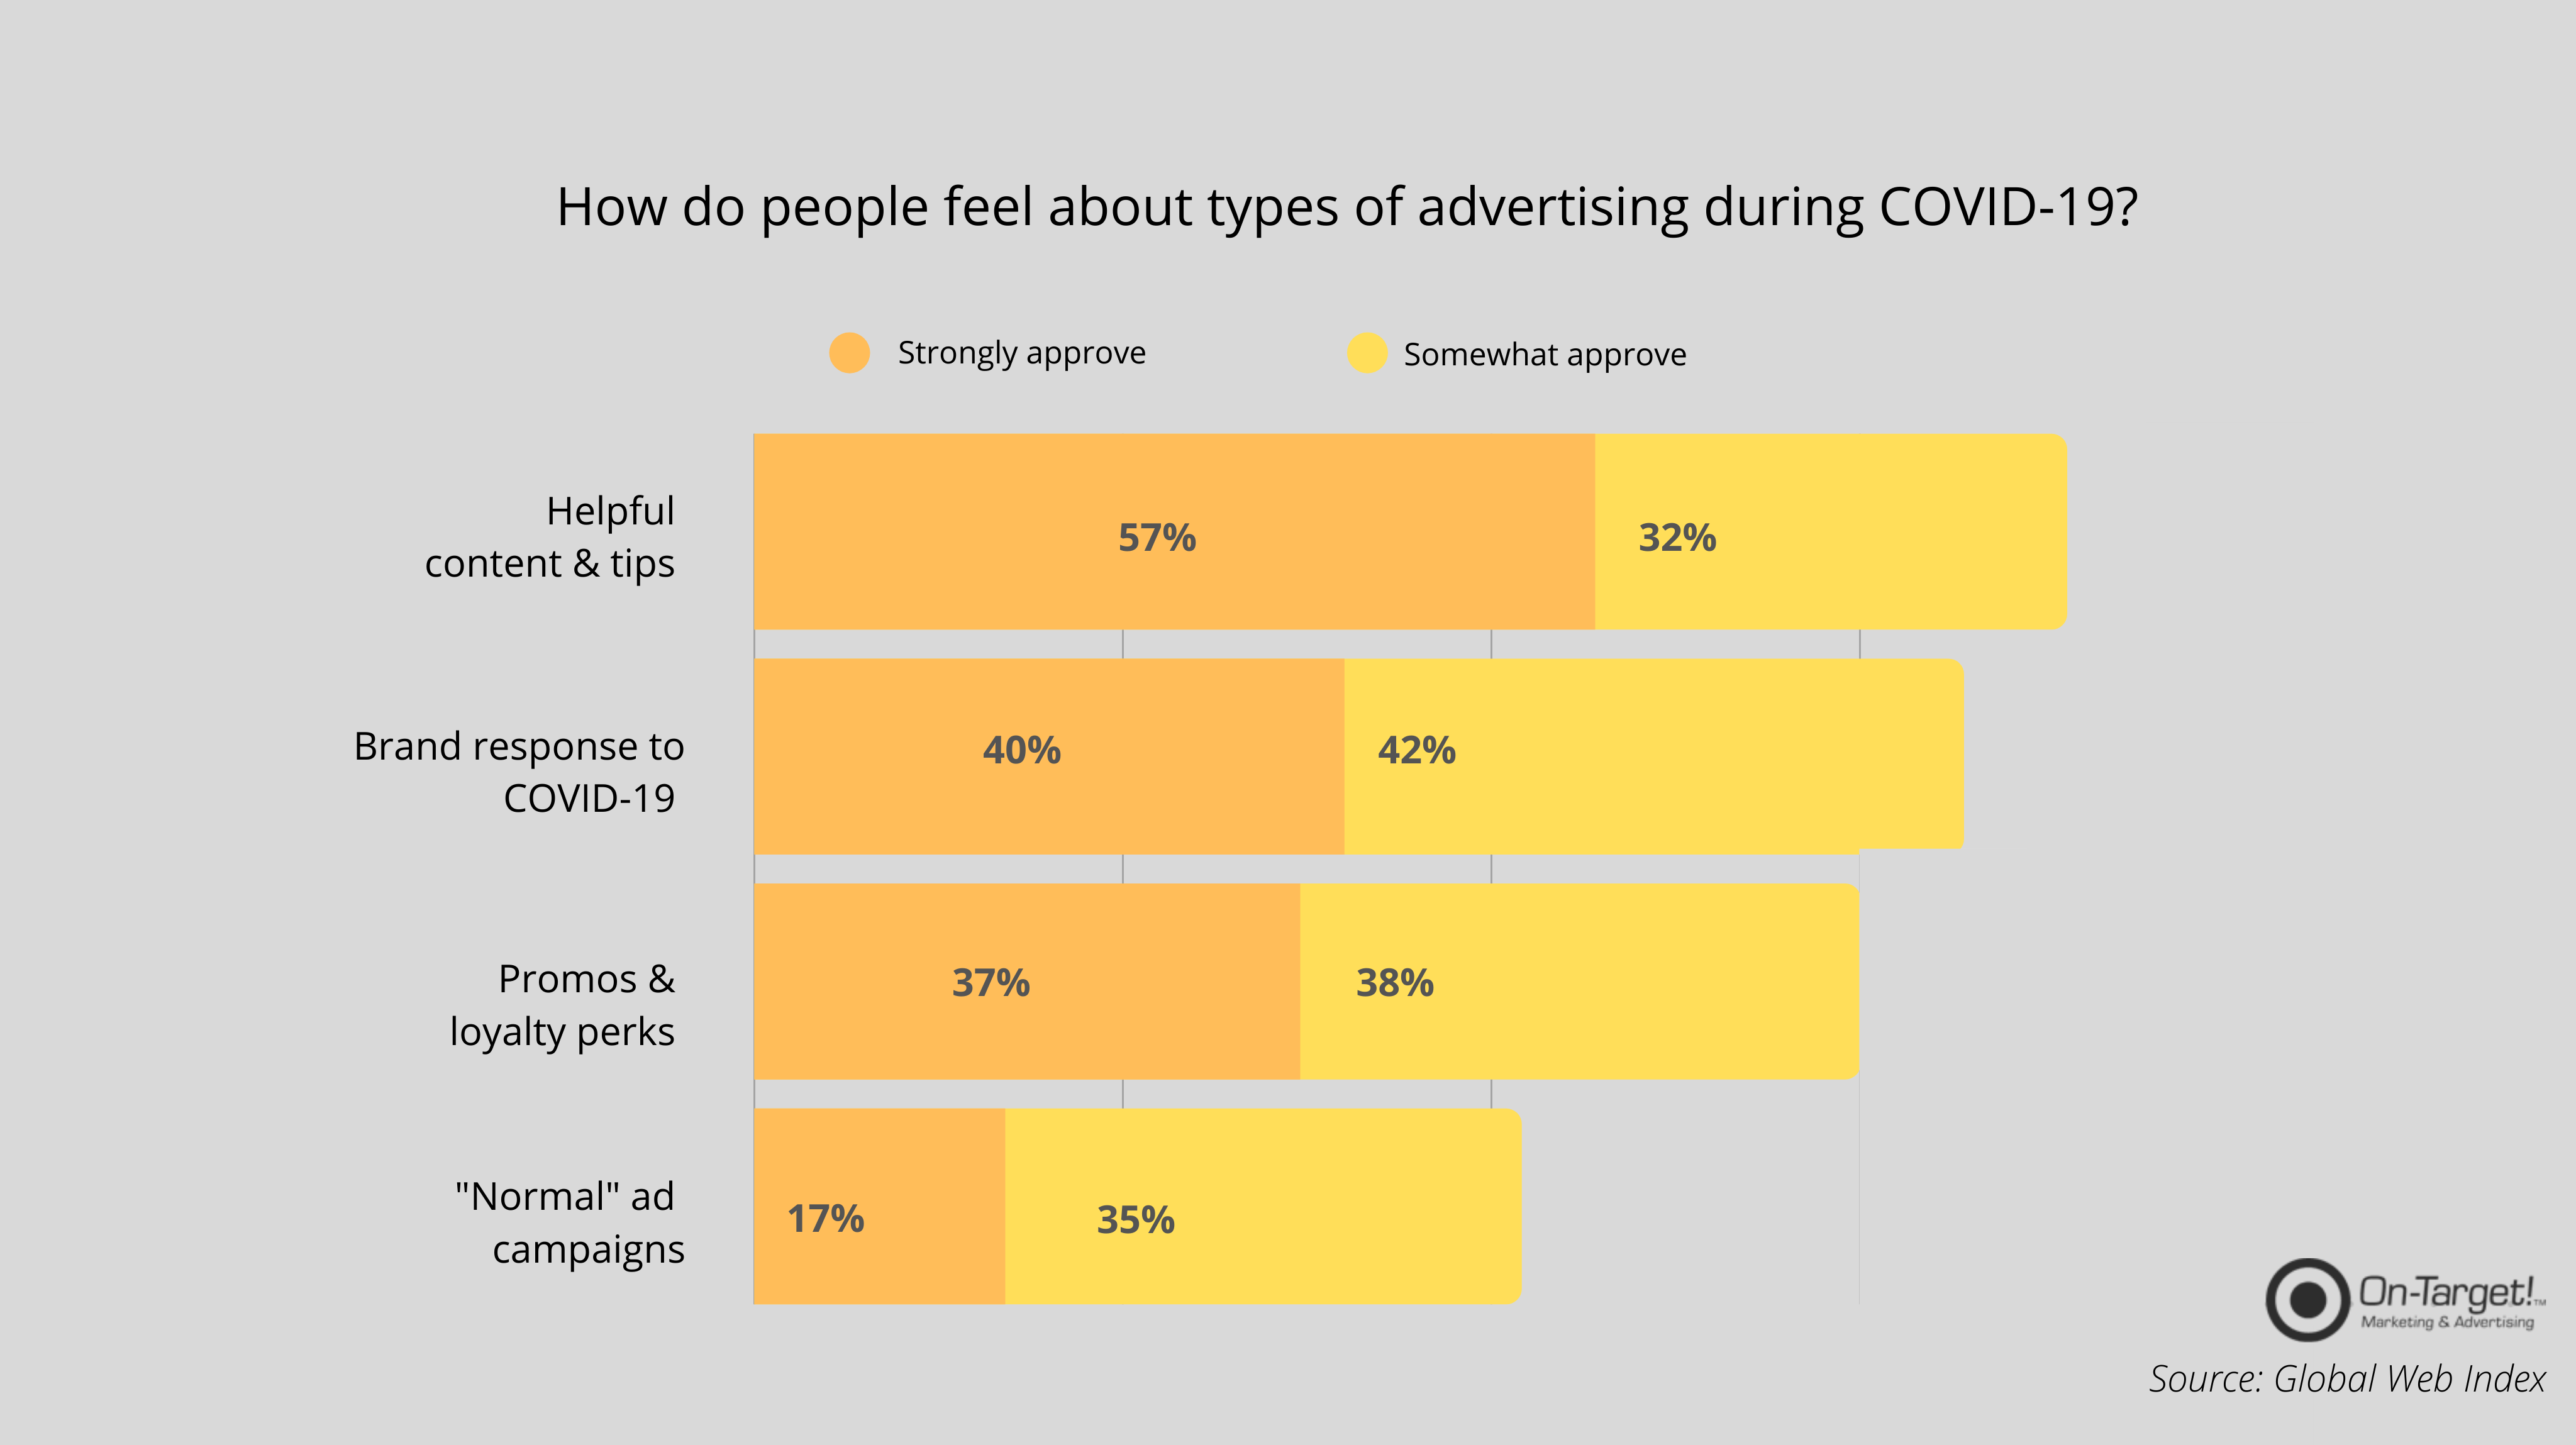 On-Target! Makreting | Digital Marketers In Houston | How Do People Feel About Advertising During COVID-19?